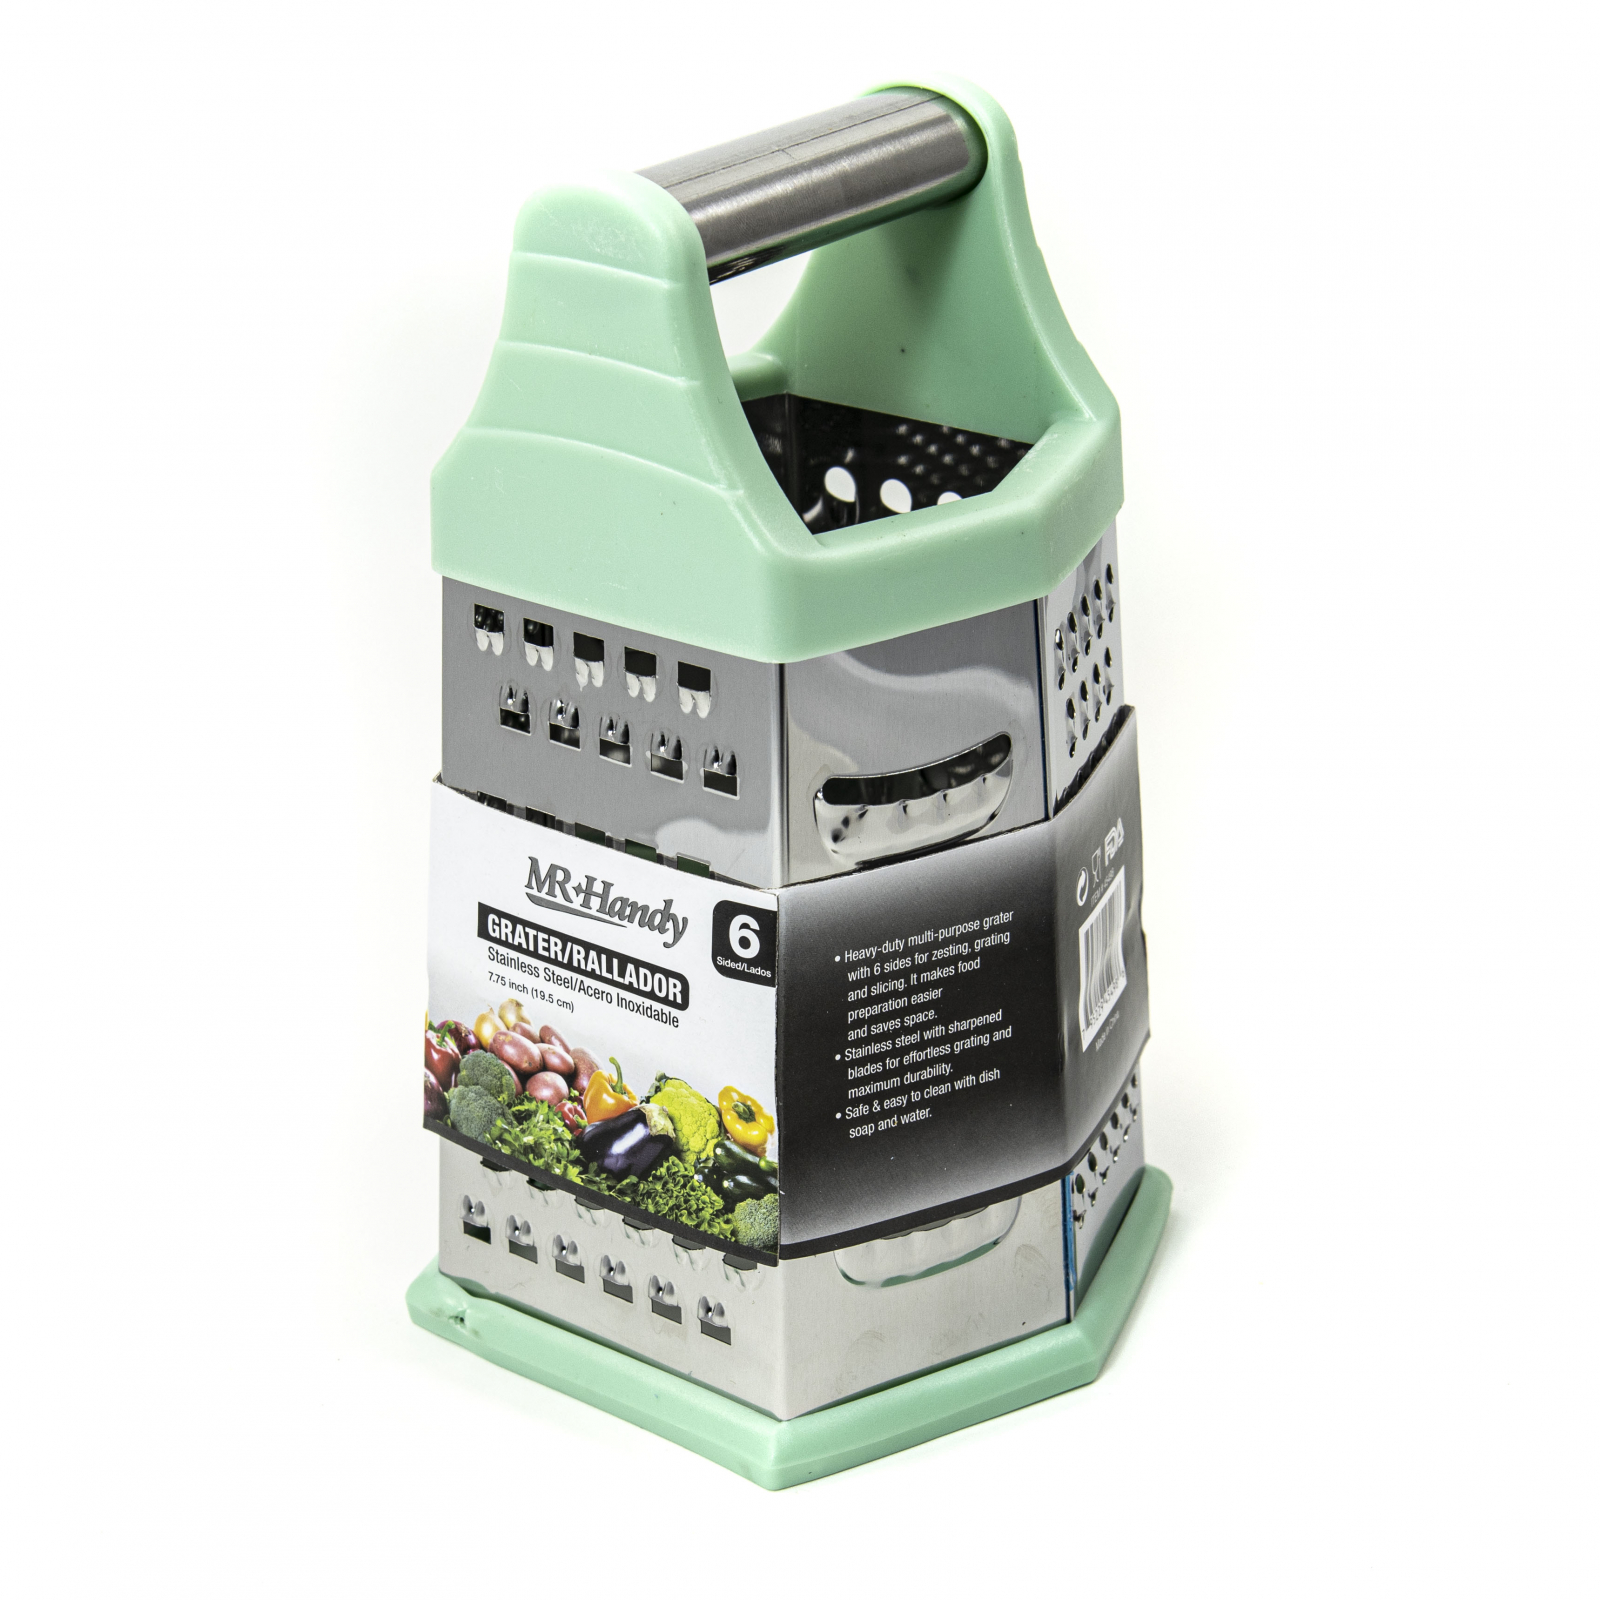 Beille 6 Side Stainless Steel Grater Top Handle Zester Green